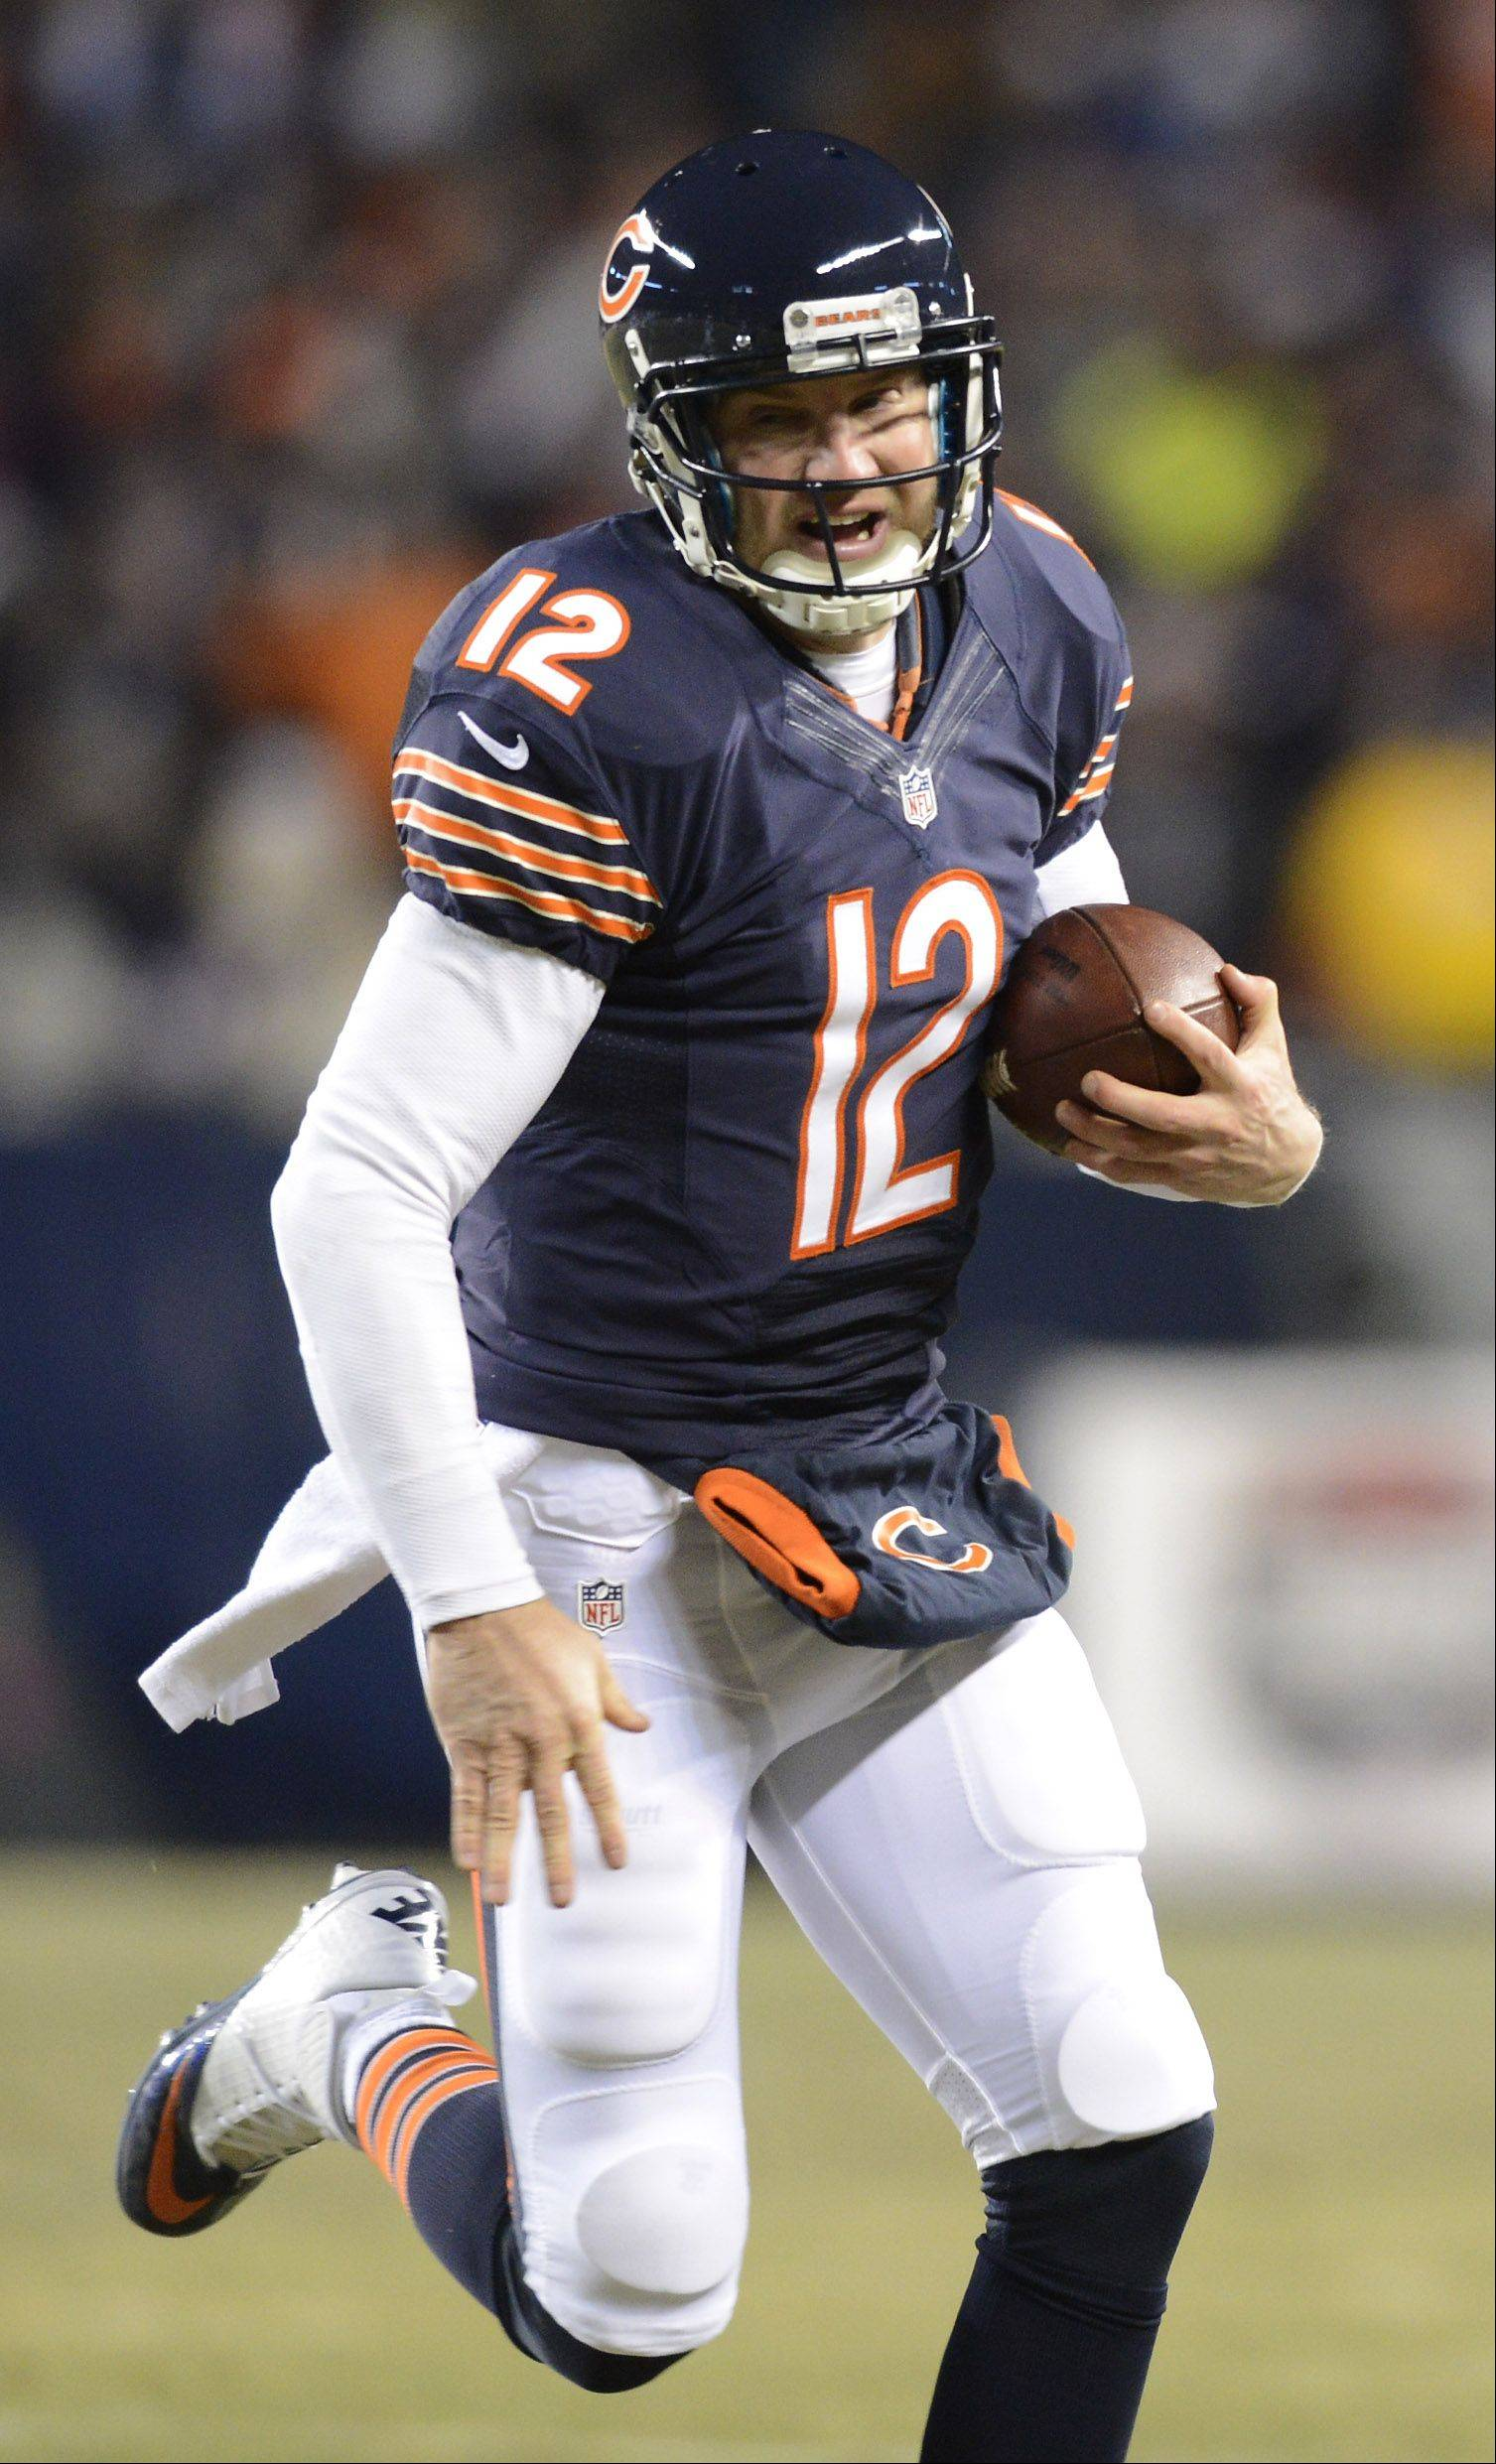 Bears quarterback Josh McCown carries the ball for a first down during Monday night's victory over the Cowboys.